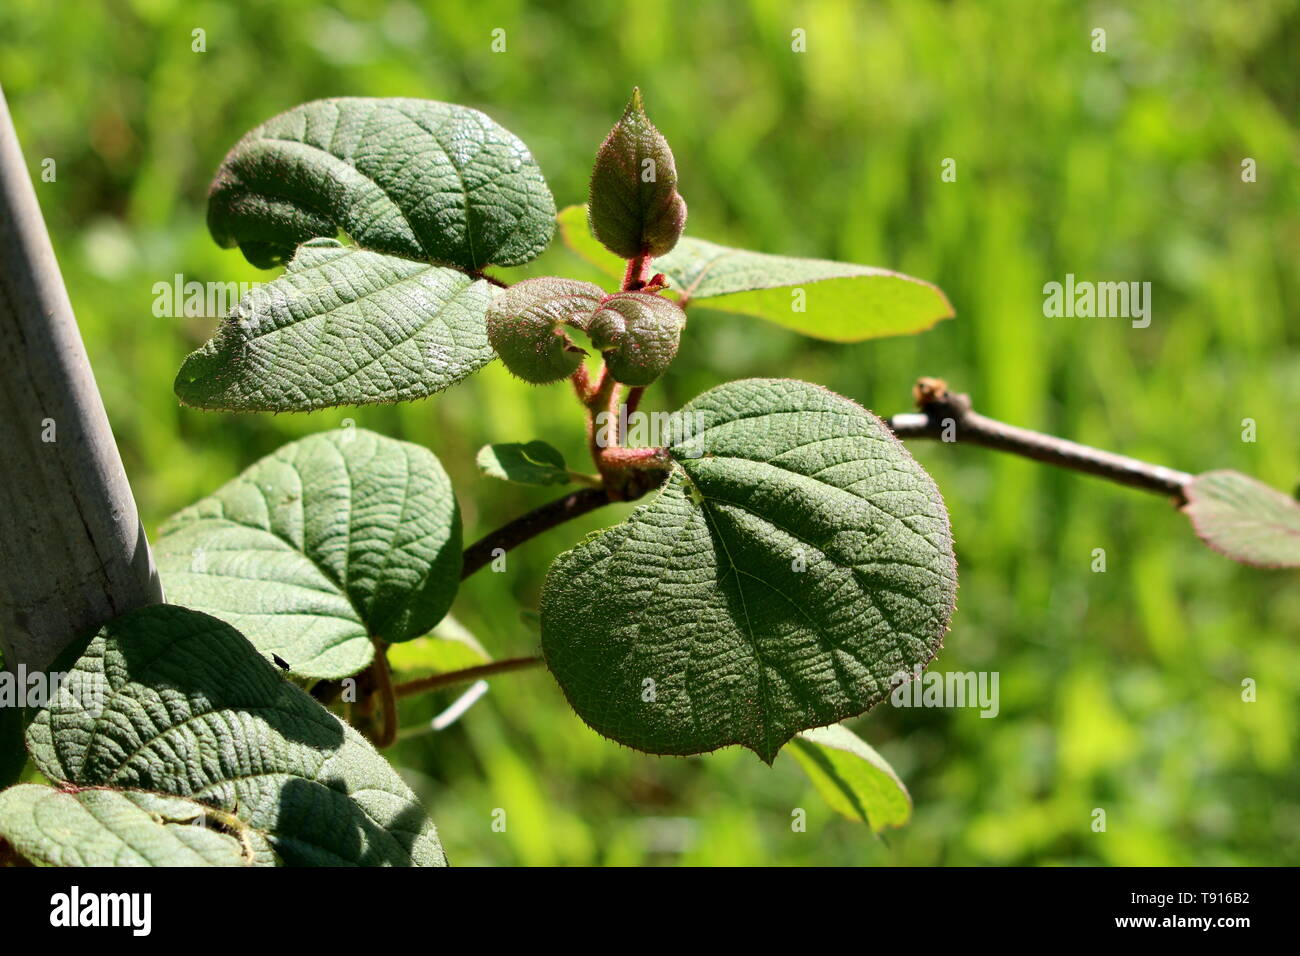 Kiwi or Kiwifruit or Chinese gooseberry woody vine plant with dark green to red leathery leaves and hairy stem planted in local garden - Stock Image